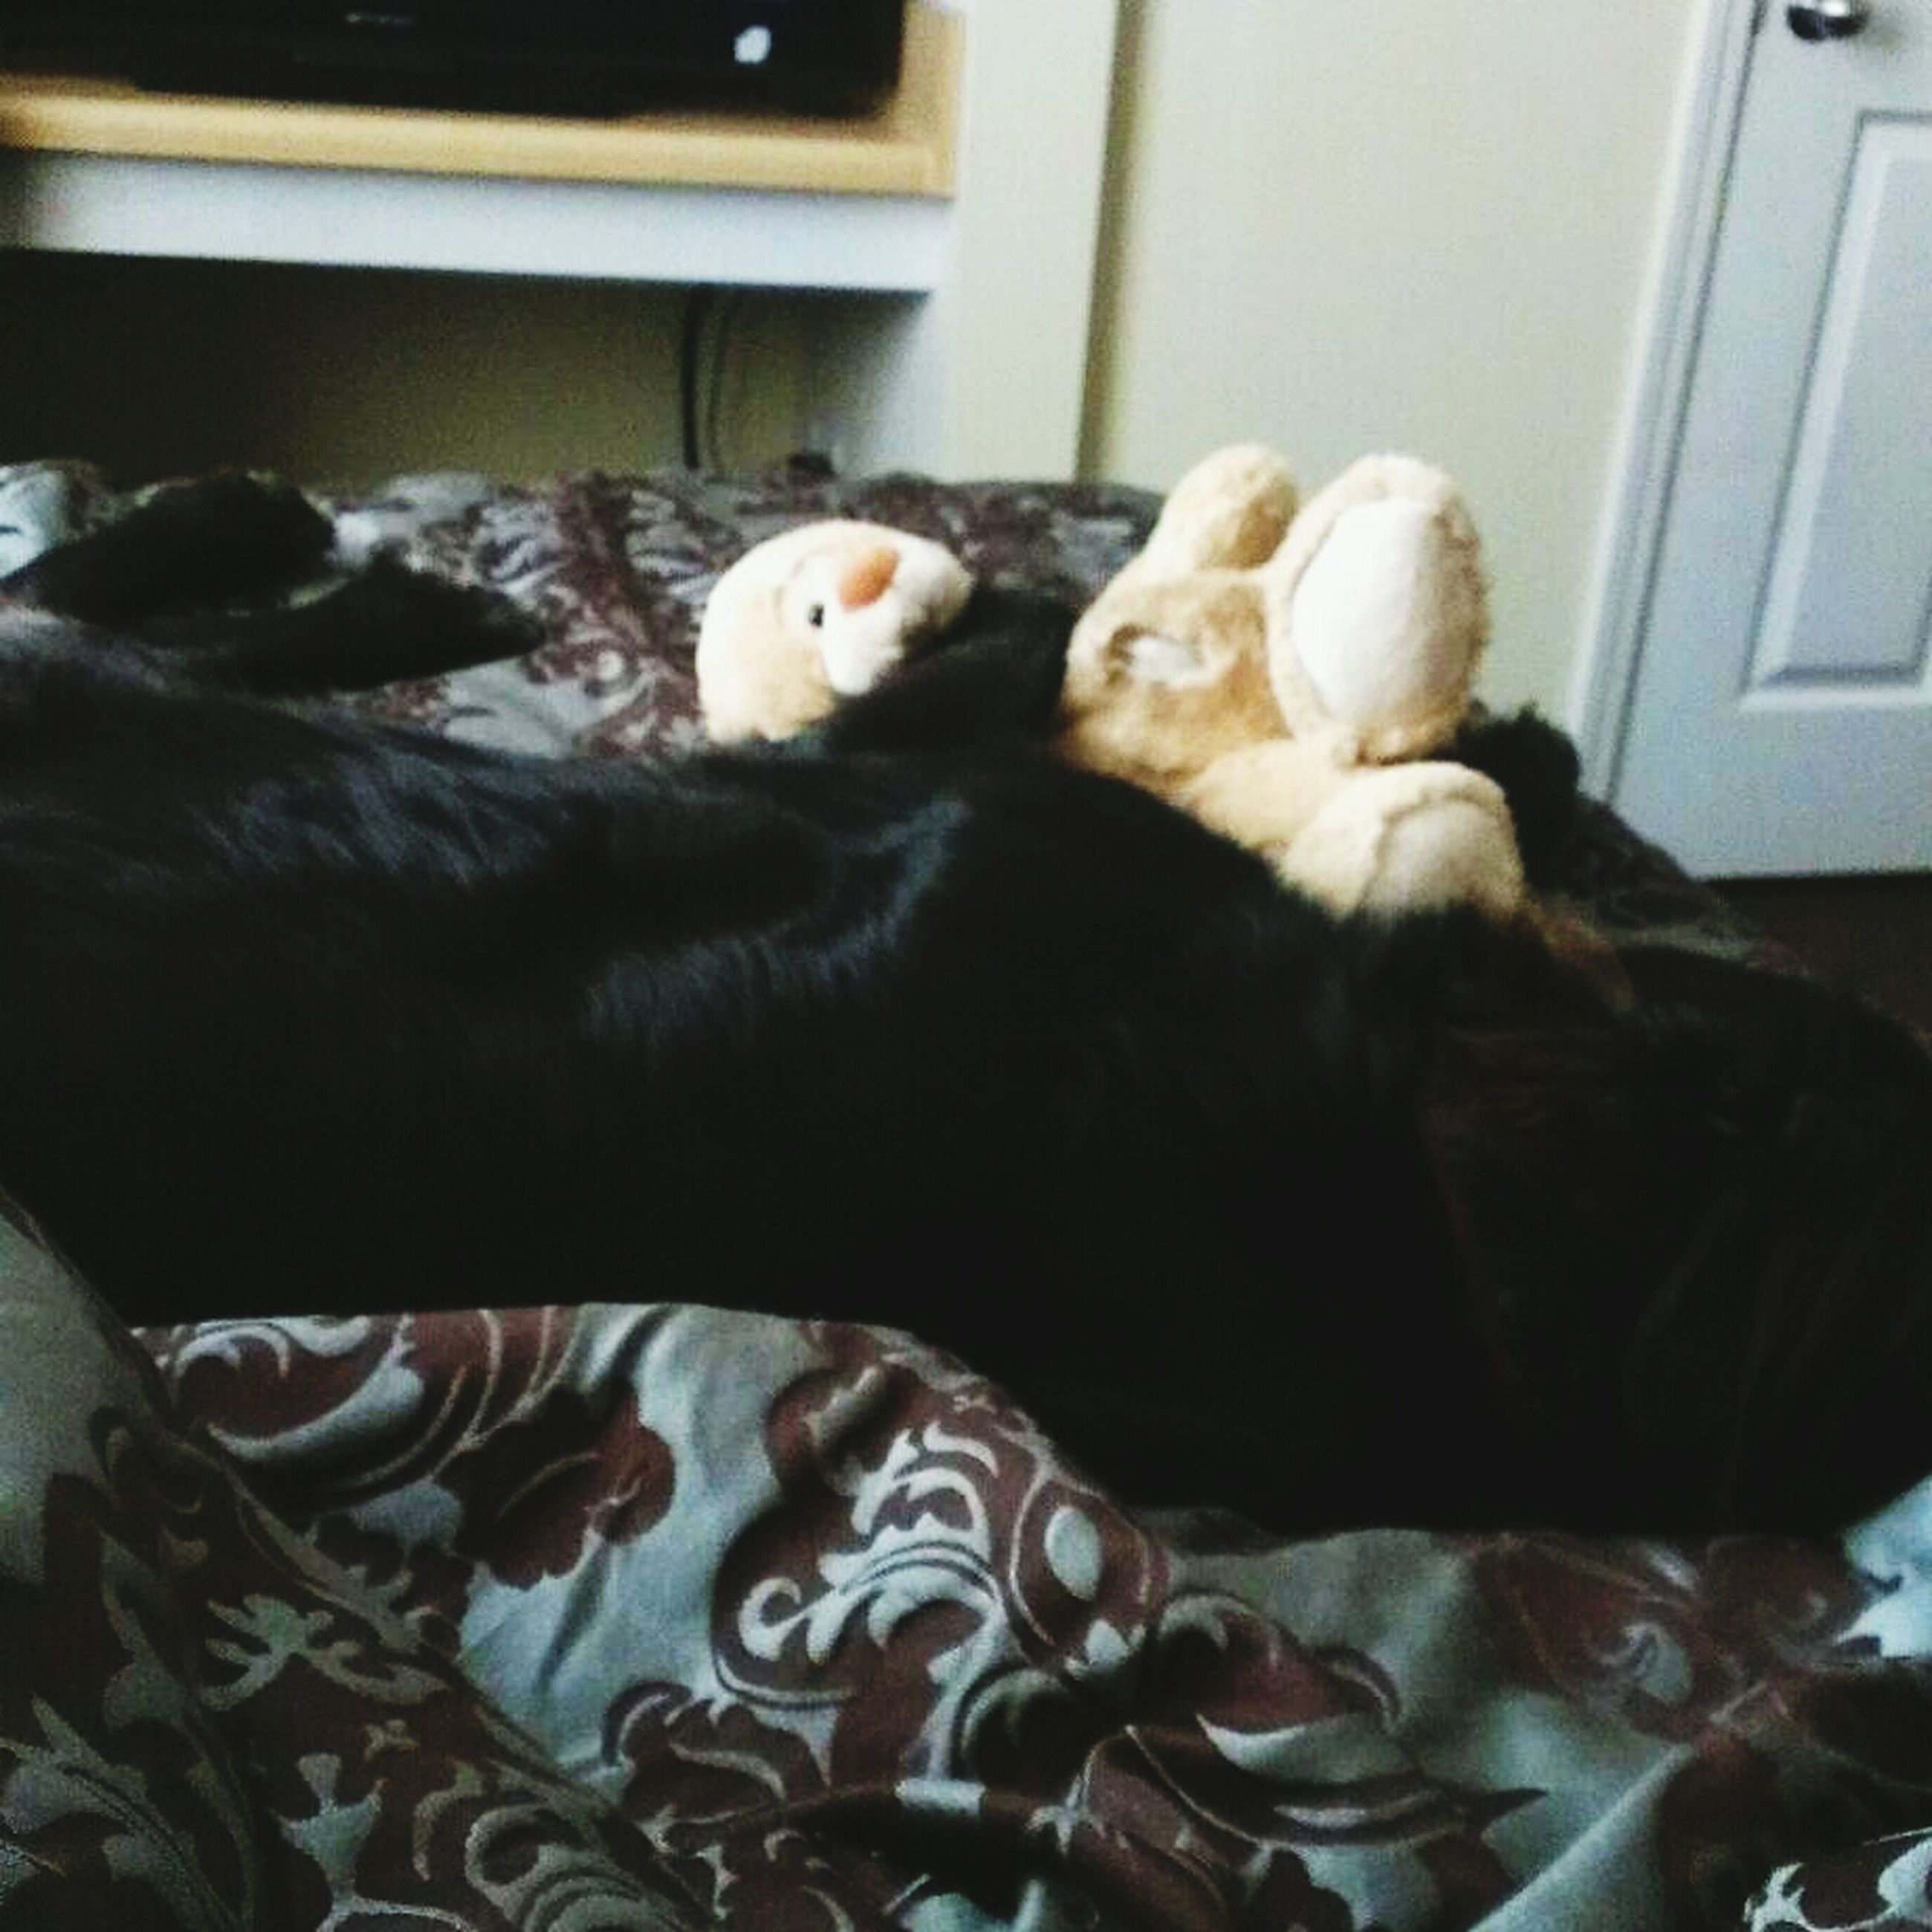 indoors, domestic animals, pets, animal themes, mammal, one animal, relaxation, home interior, bed, resting, sleeping, domestic cat, lying down, cat, sofa, bedroom, dog, home, pillow, comfortable